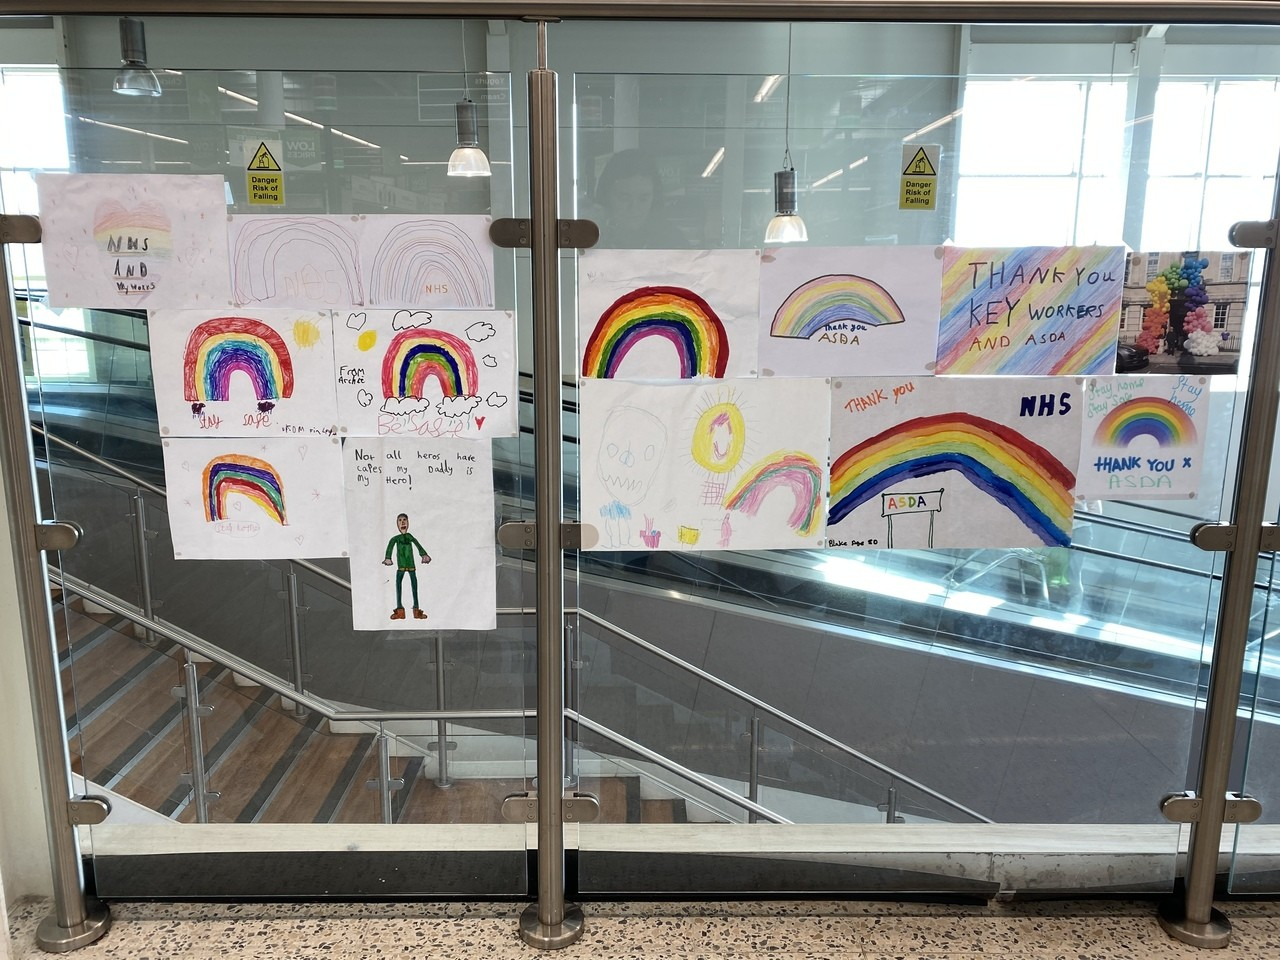 Thank you to all our key workers🌈 | Asda Ware